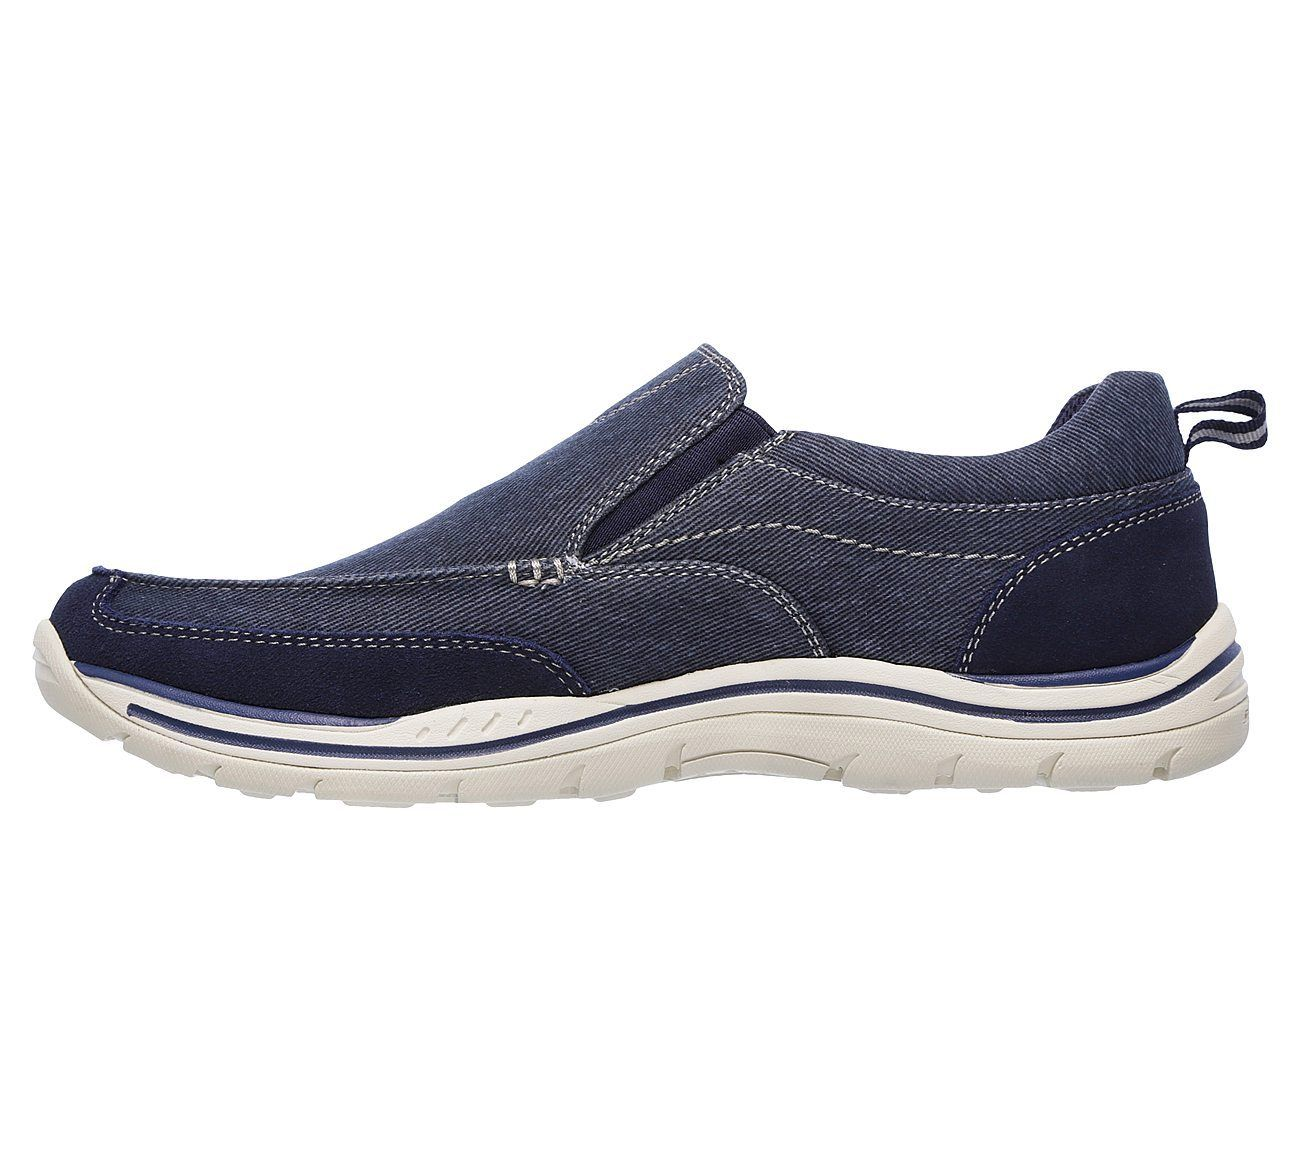 Skechers Expected Tomen Mens Casual Slip On Memory Foam Shoes